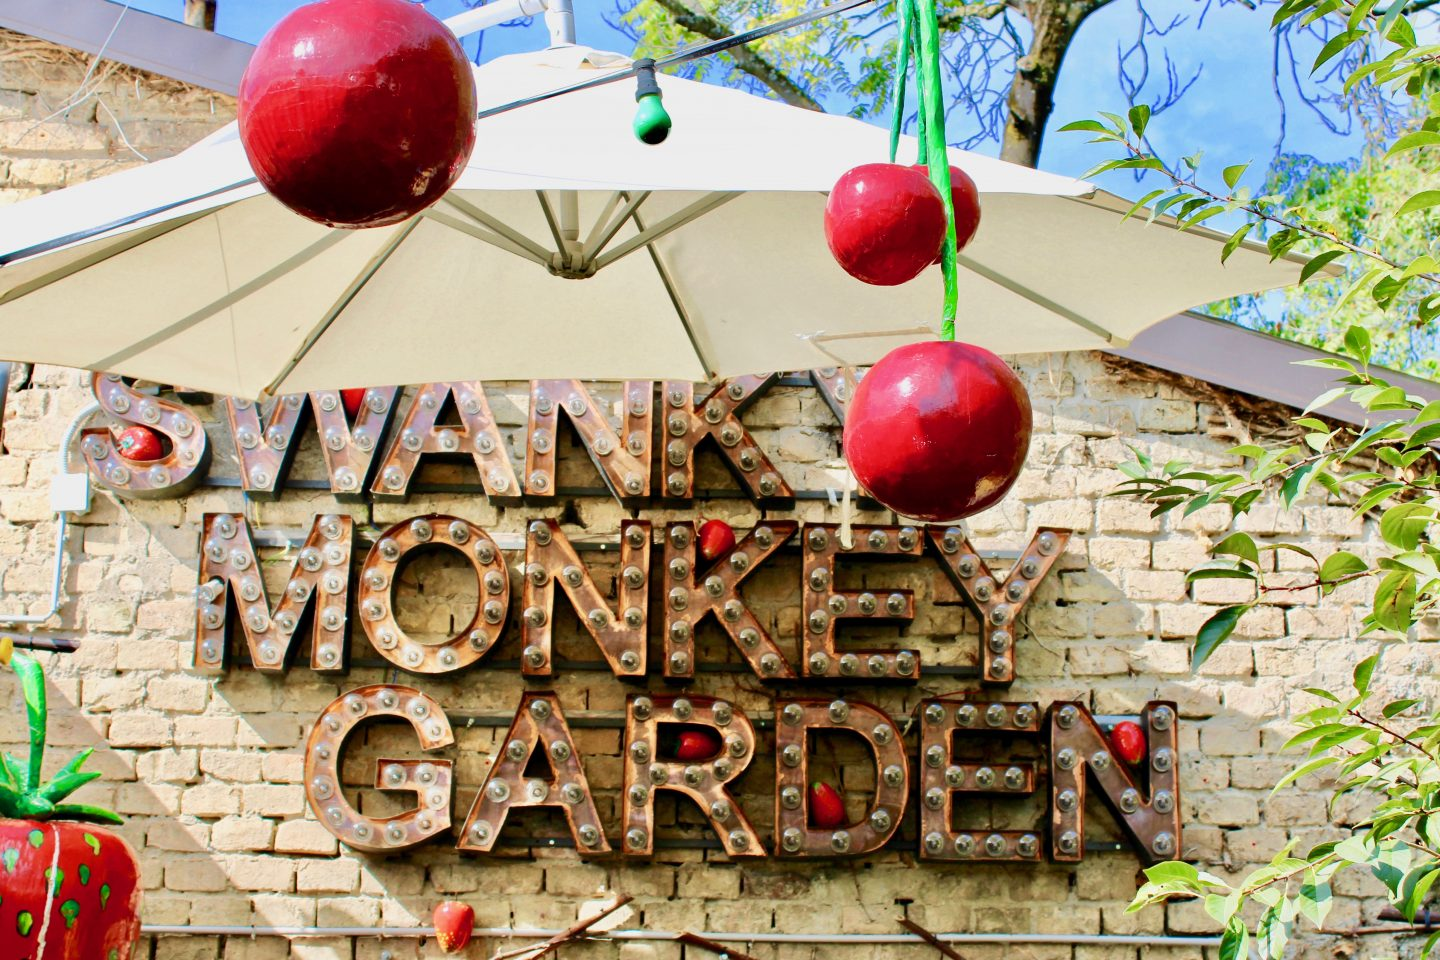 swanky mint hostel zagreb review: Swanky Monkey Garden bar